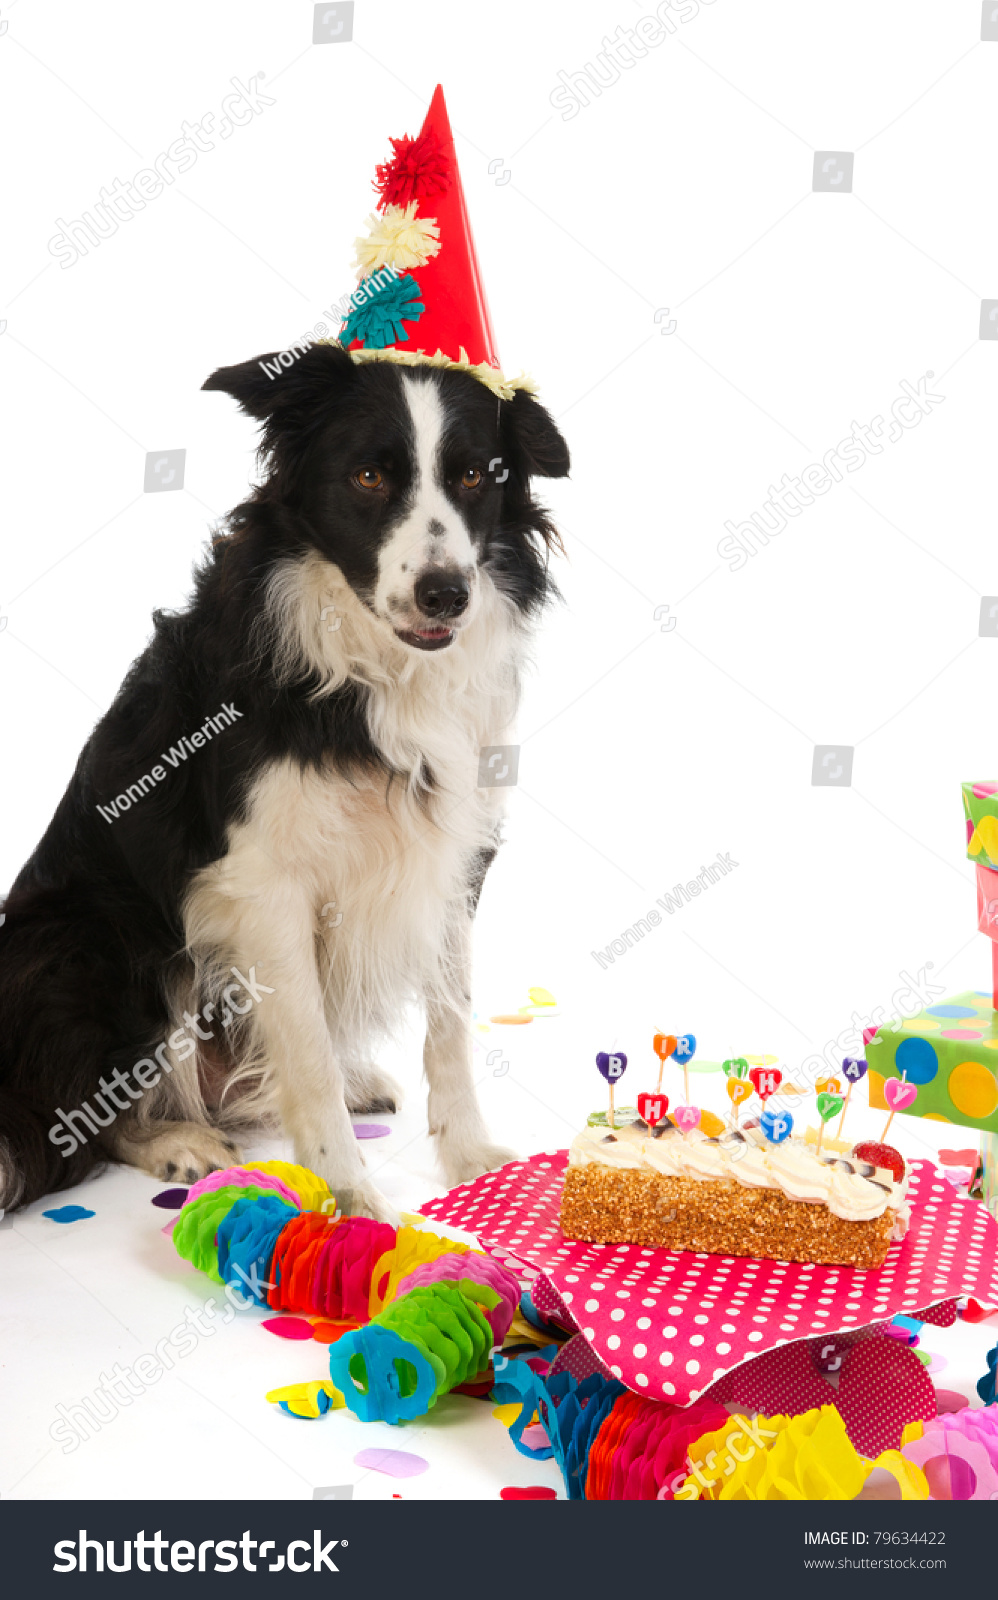 border collie happy birthday images ; stock-photo-border-collie-is-having-a-colorful-birthday-79634422